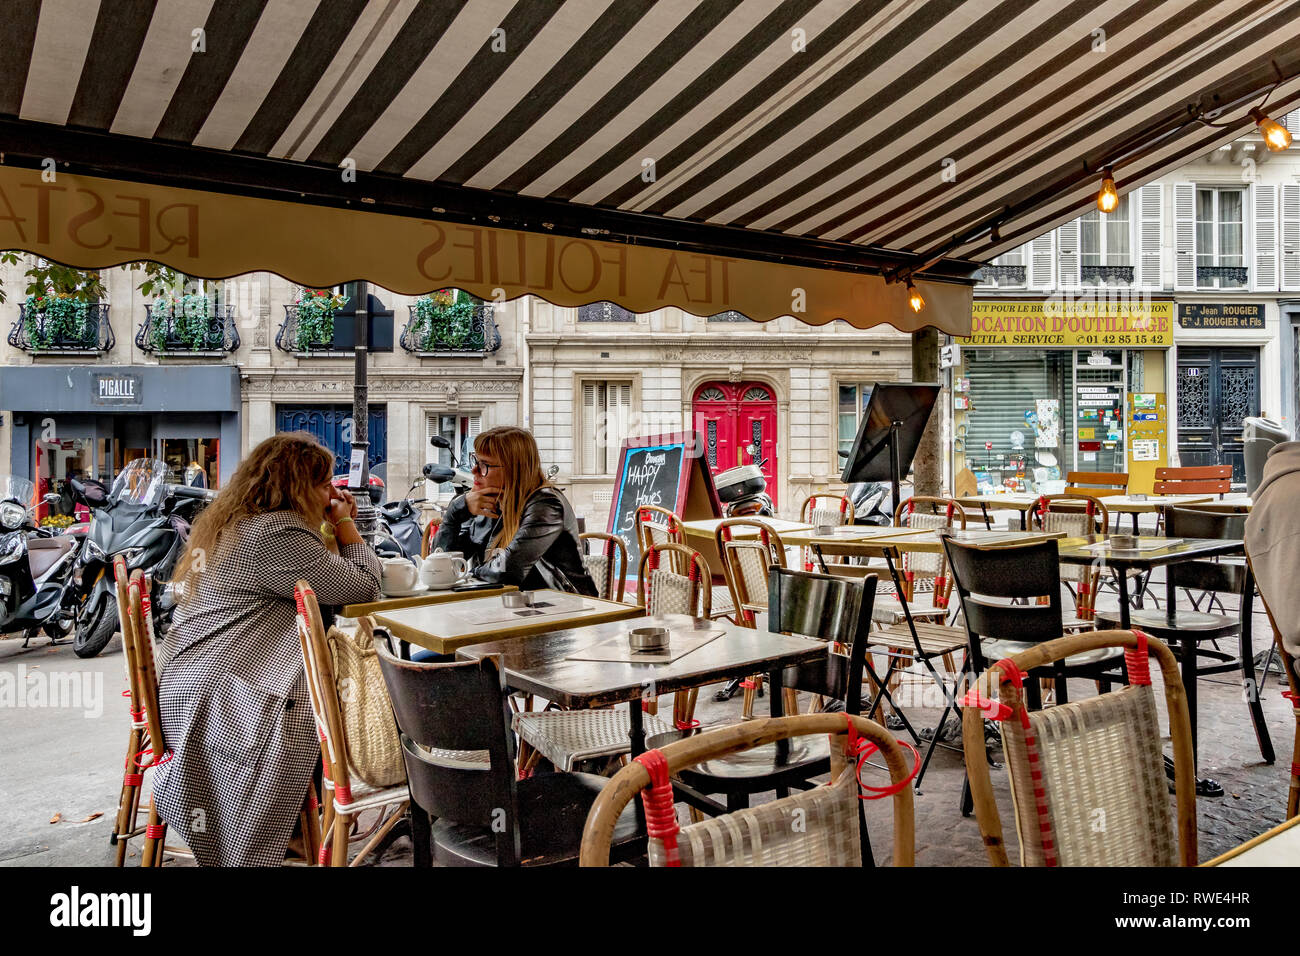 Two woman talking and enjoying a pot of tea at a restaurant in St Georges in the 9th arrondissement of Paris Stock Photo